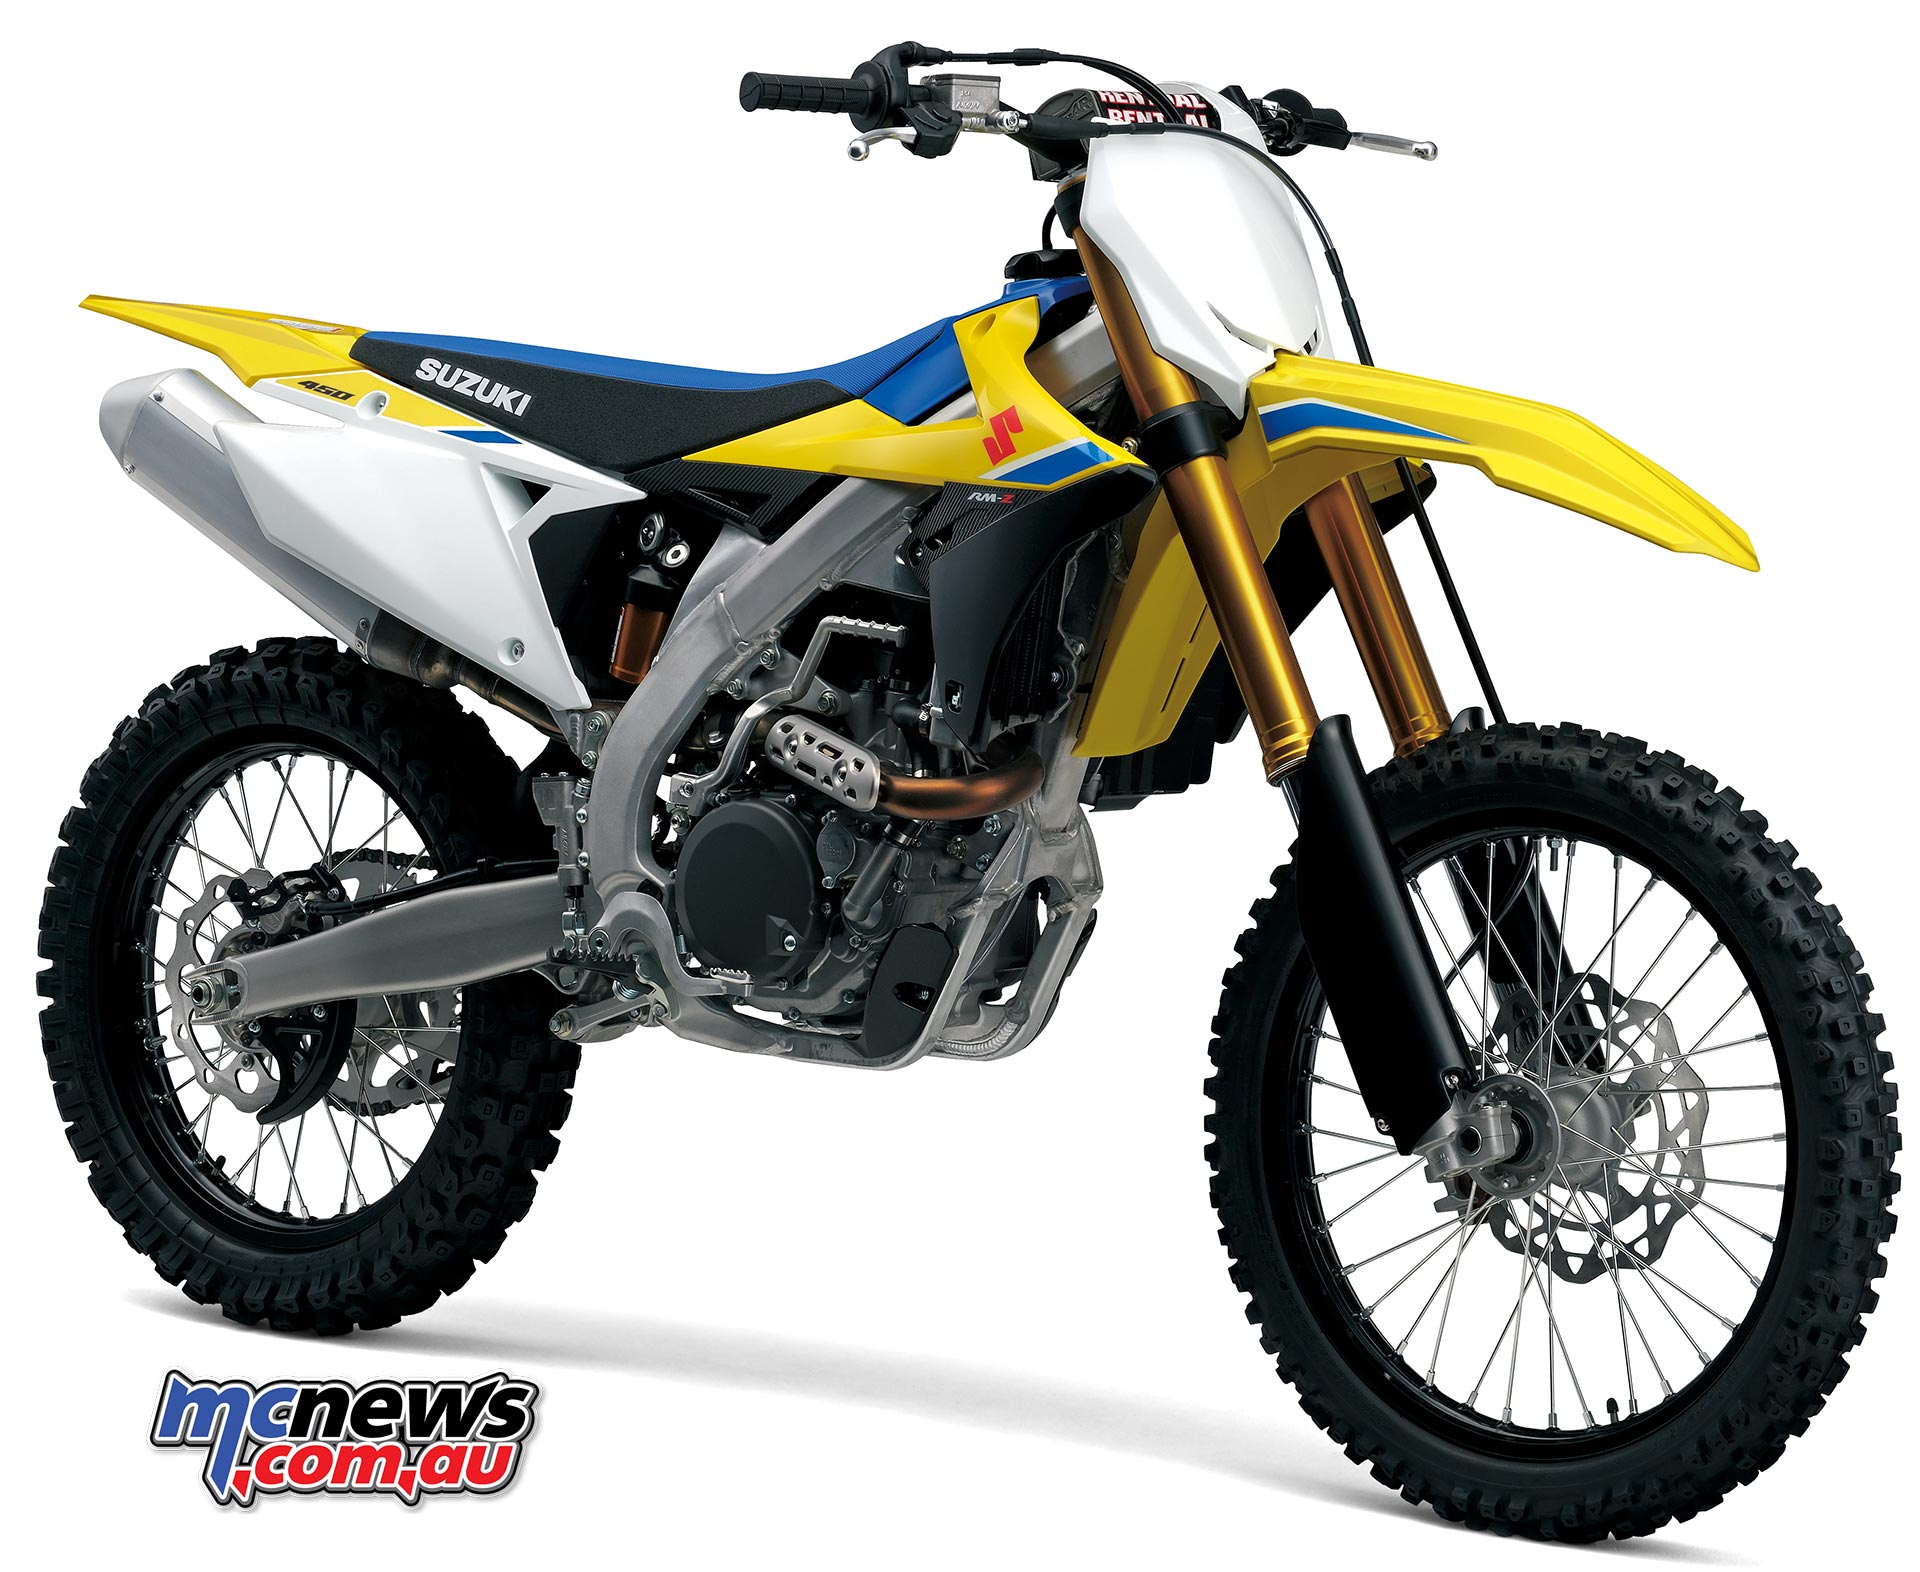 Suzuki's heavily updated for 2018 RM-Z450